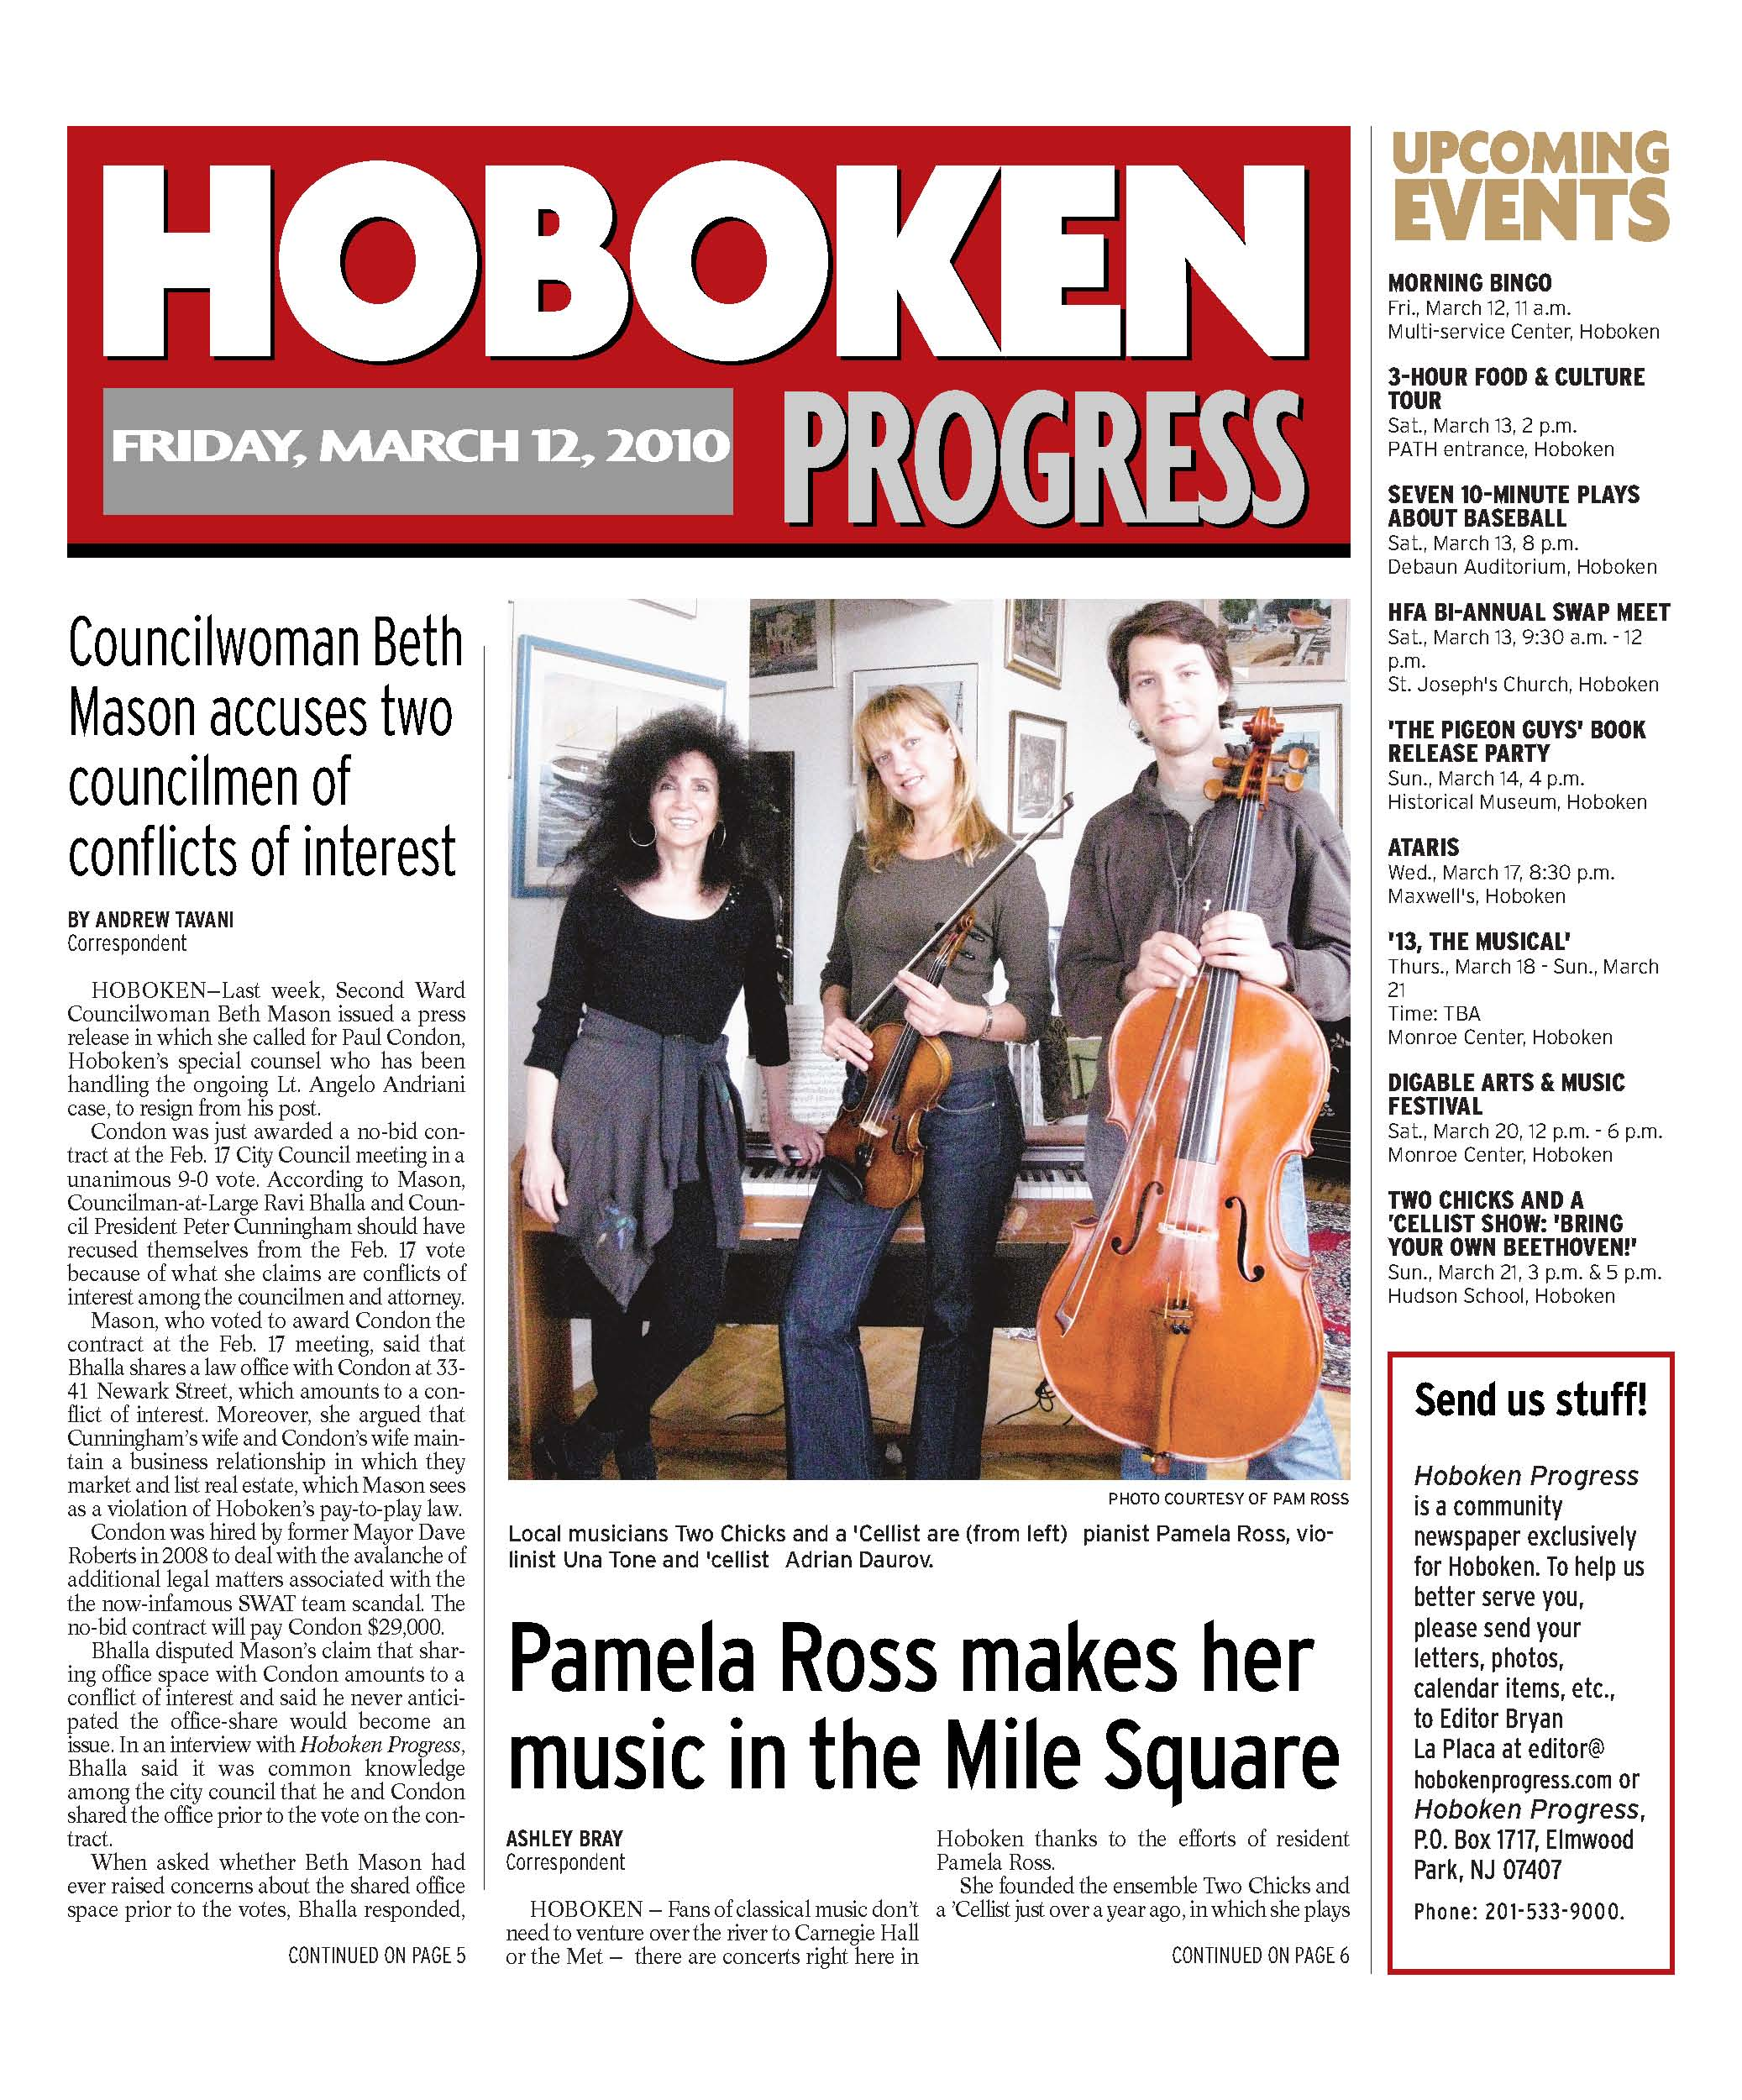 Pamela Ross makes her music in the Mile Square -Page 1